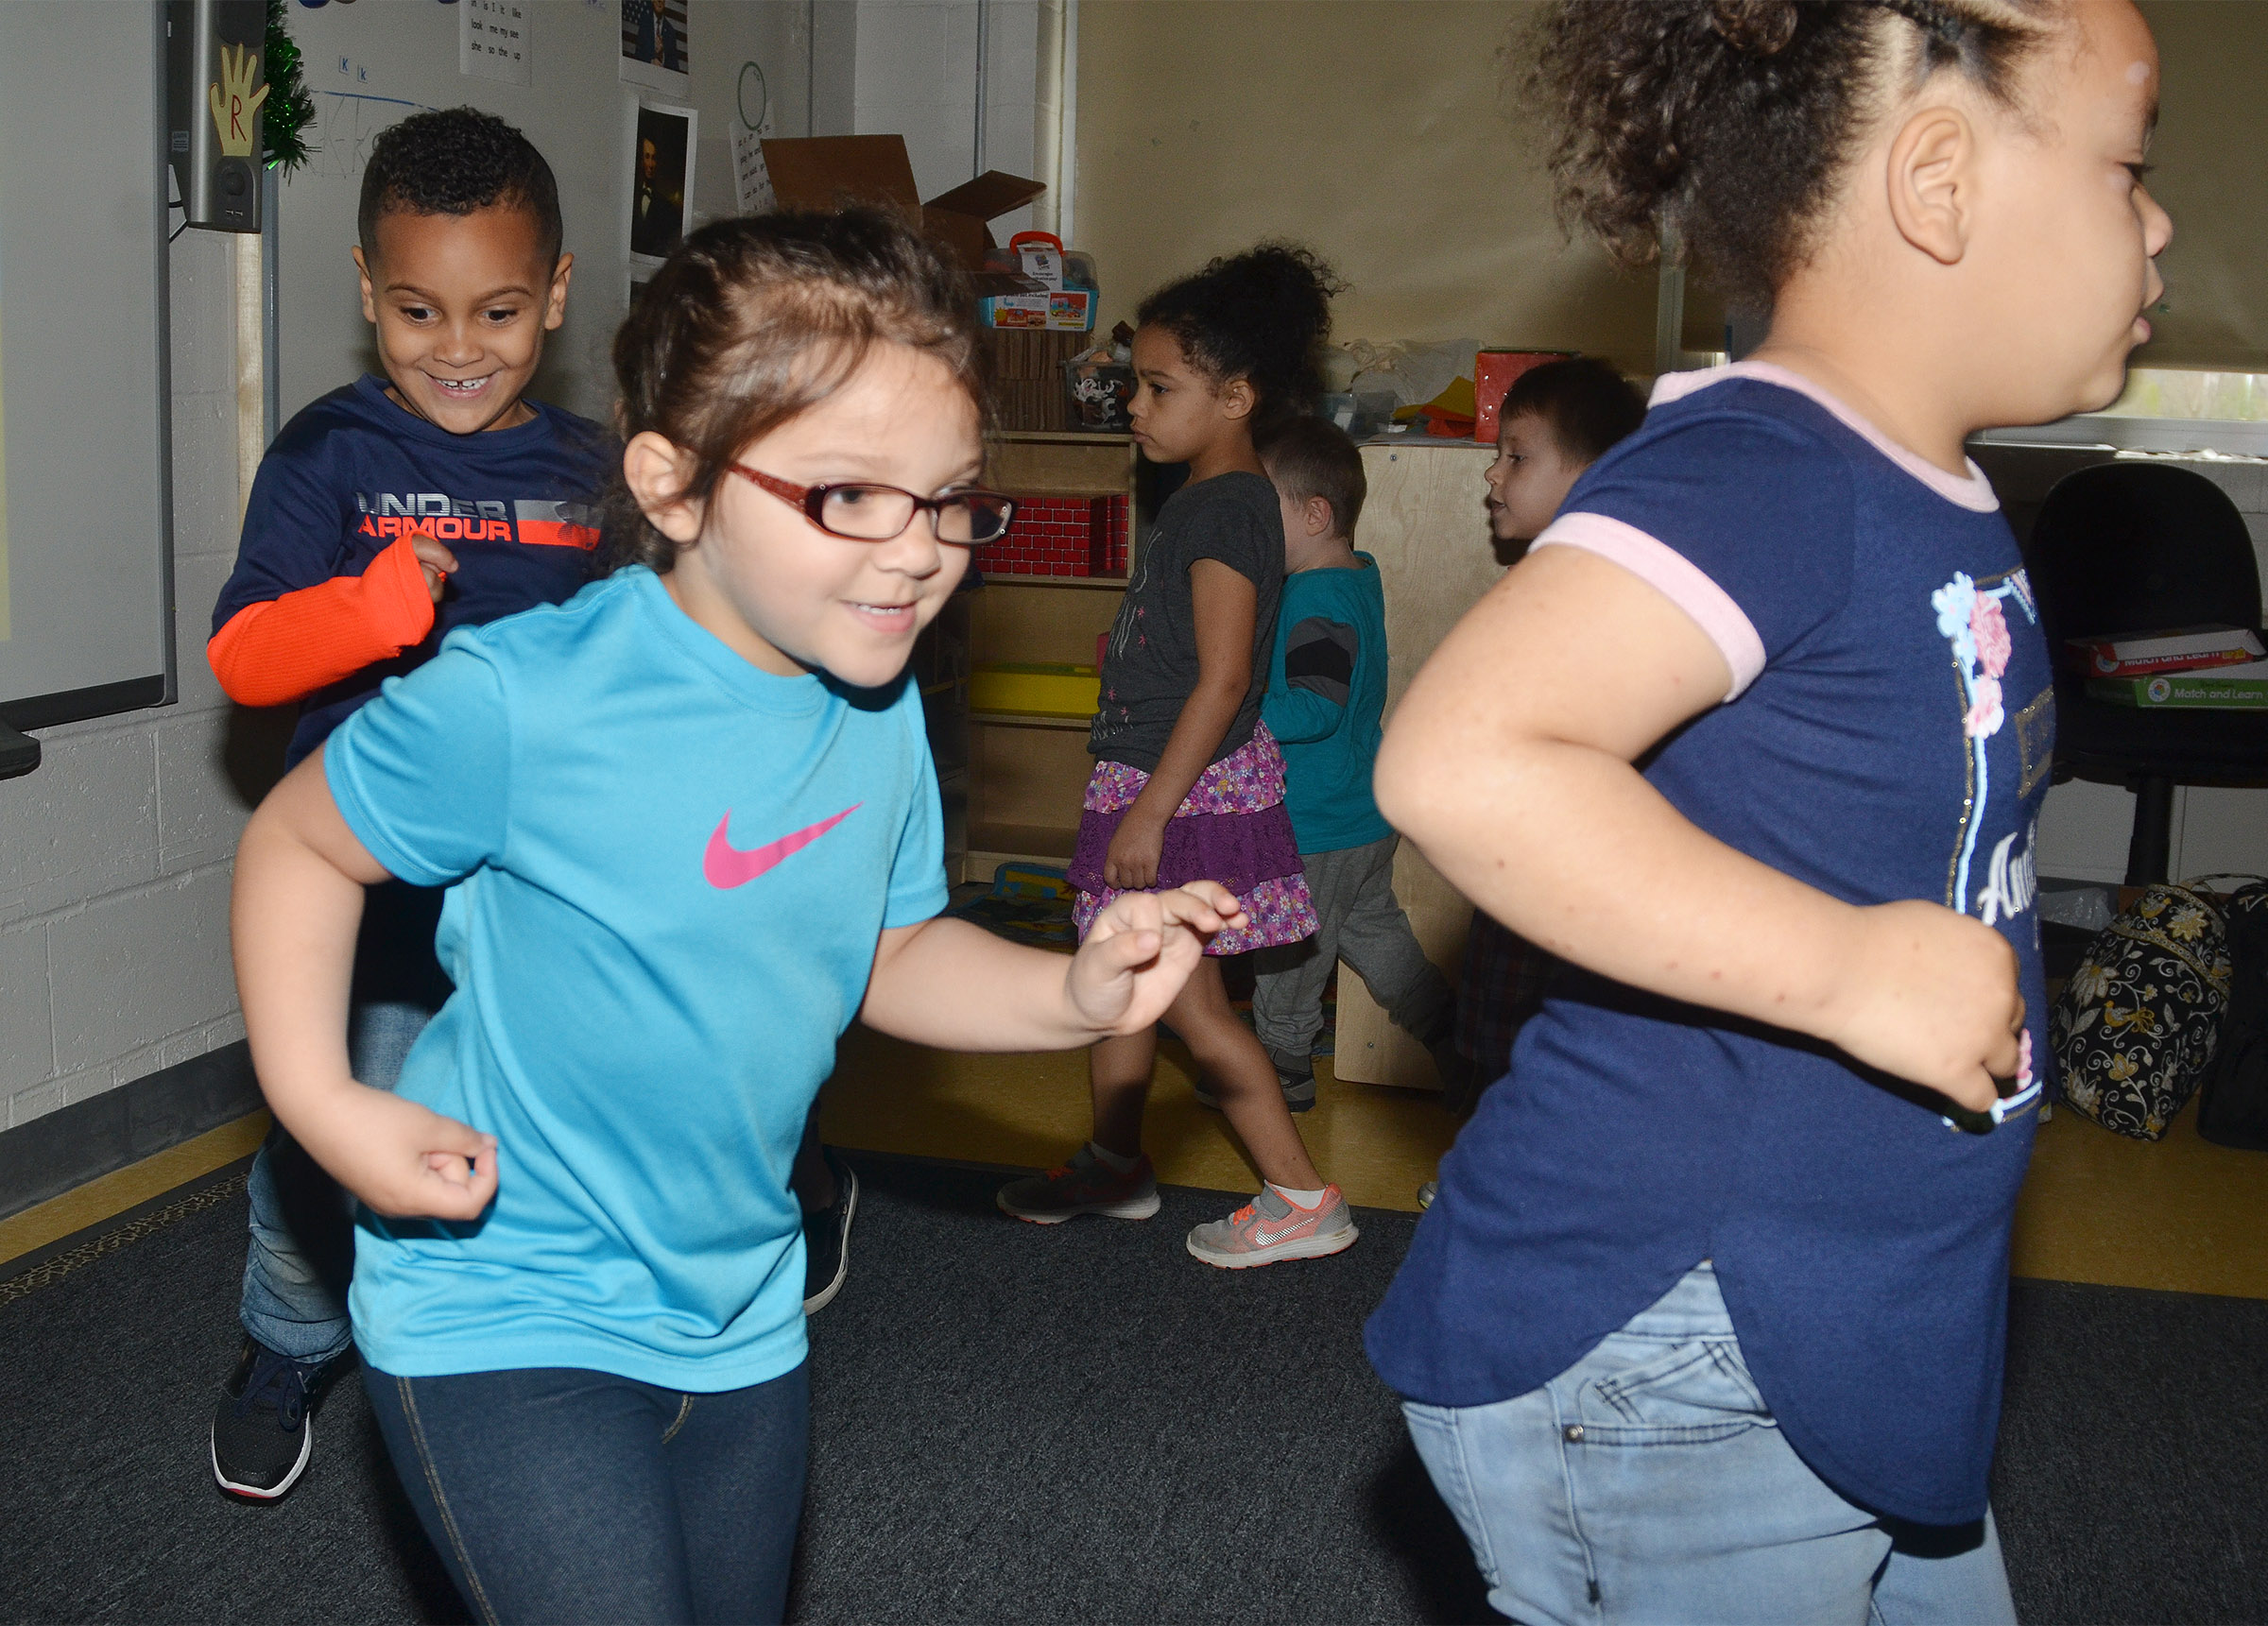 From left, CES preschool students Kingston Cowherd, Rylee Karr and Lillian Merriweather dance together.